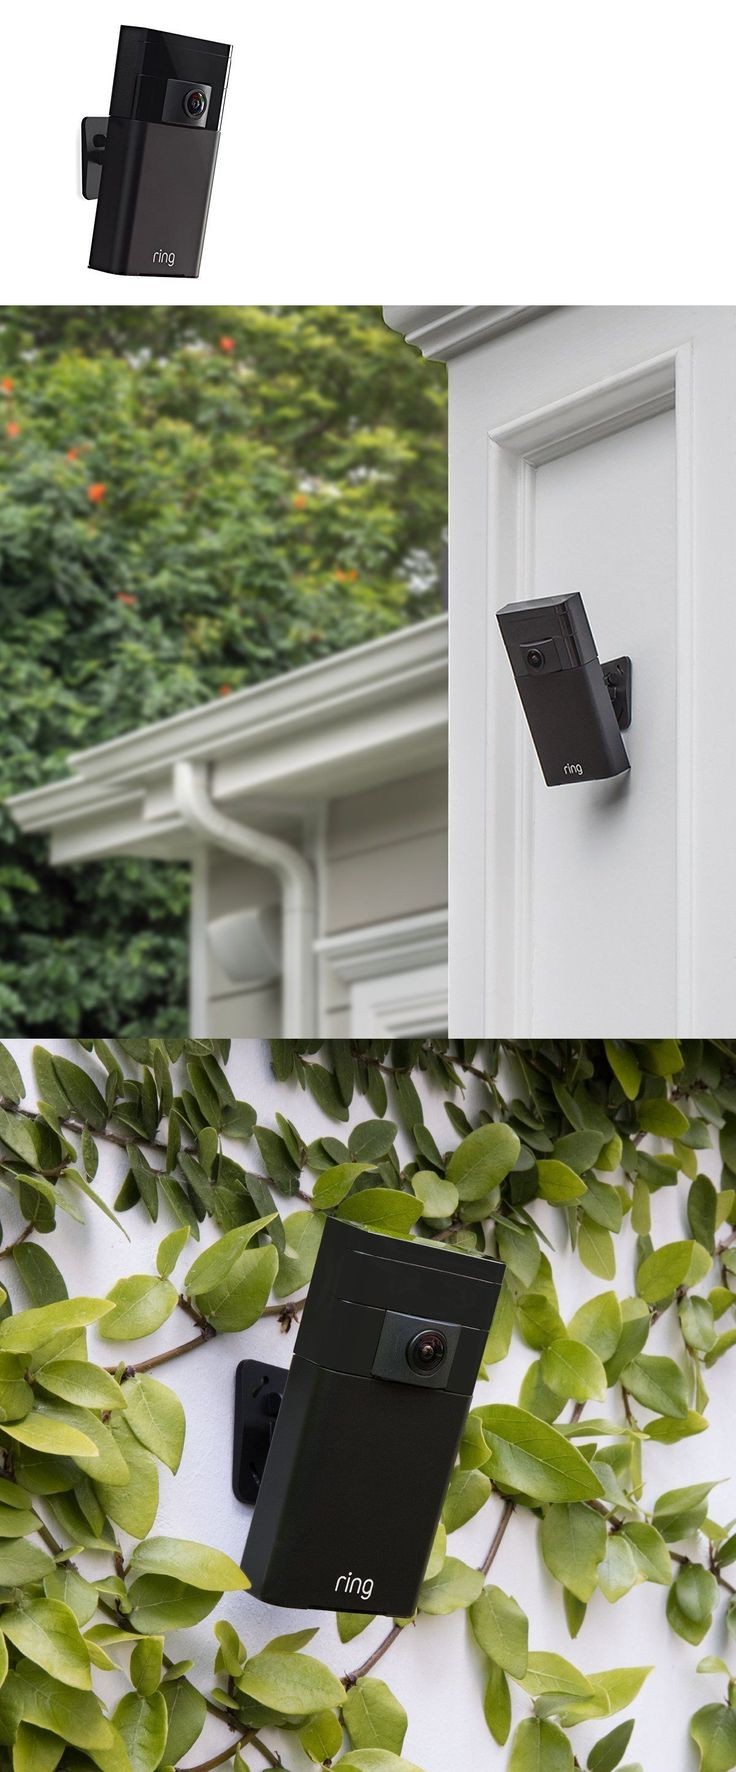 Security Cameras: Ring Stick Up Cam Wireless Outdoor Security Doorbell Camera With 2-Way Audio New -> BUY IT NOW ONLY: $159.99 on eBay!